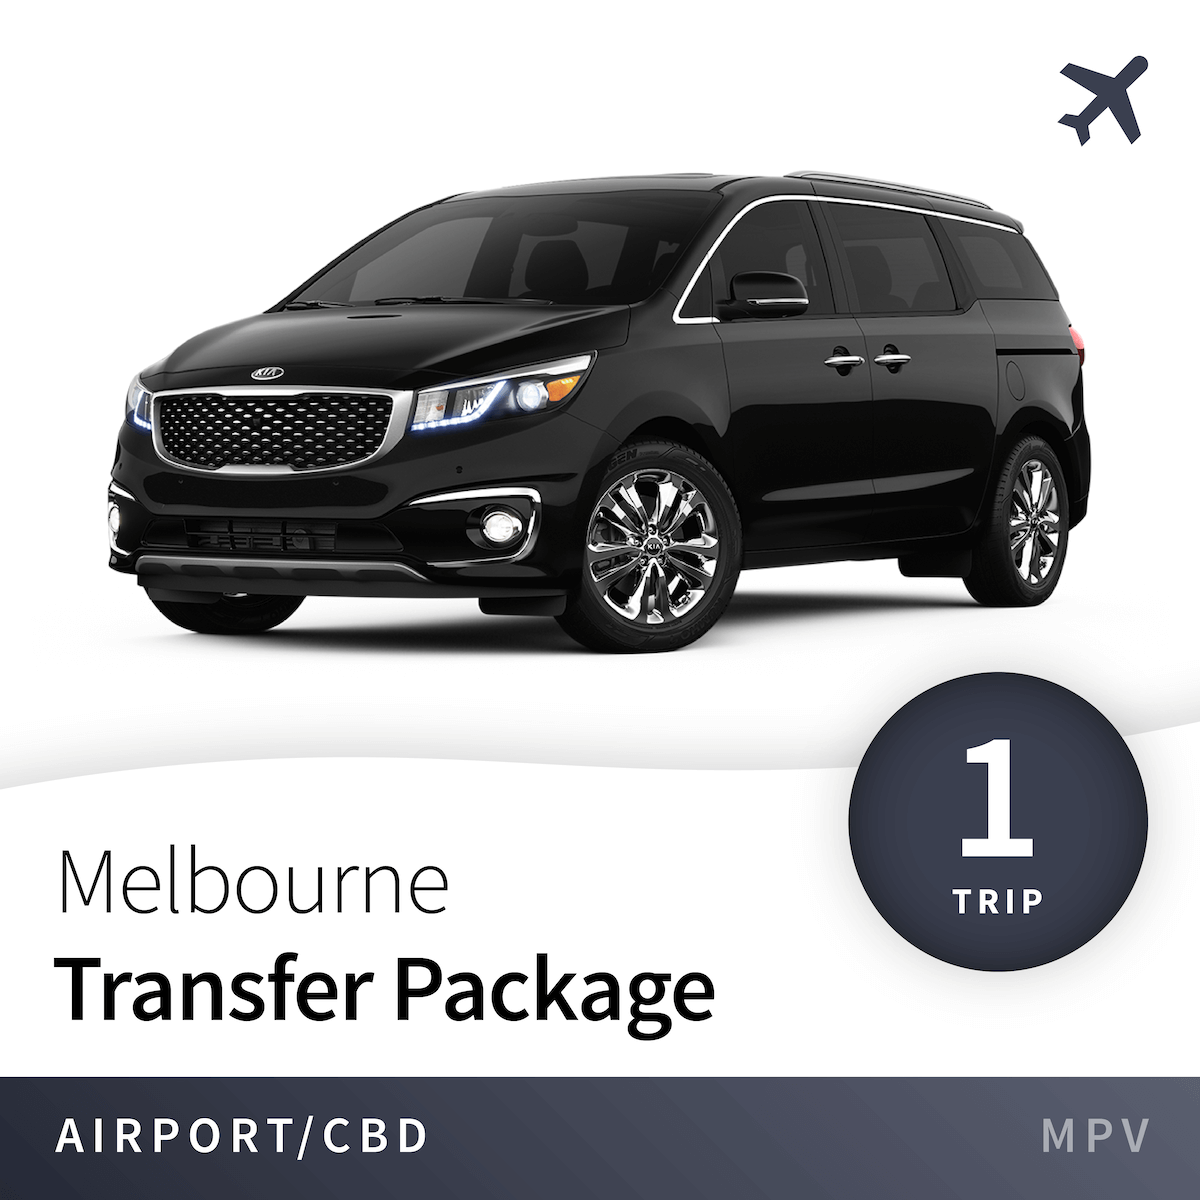 Melbourne Airport Transfer Package - MPV (1 Trip) 11